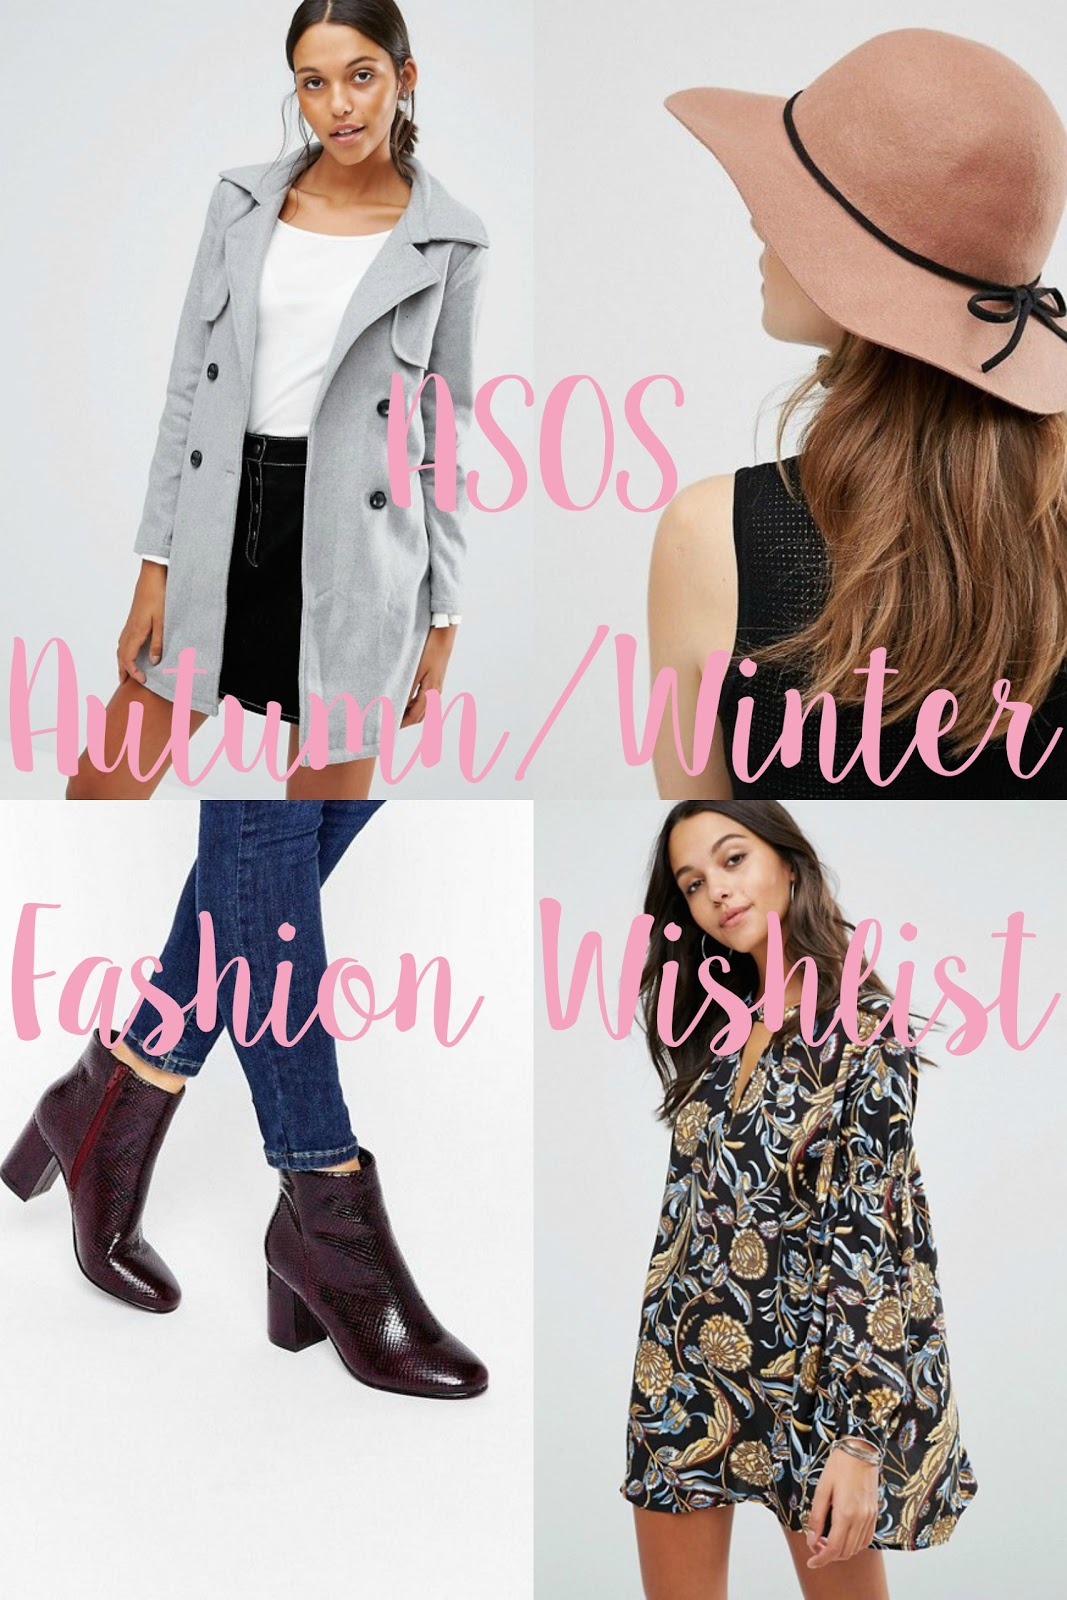 ASOS Autumn/Winter 2016 Wishlist.